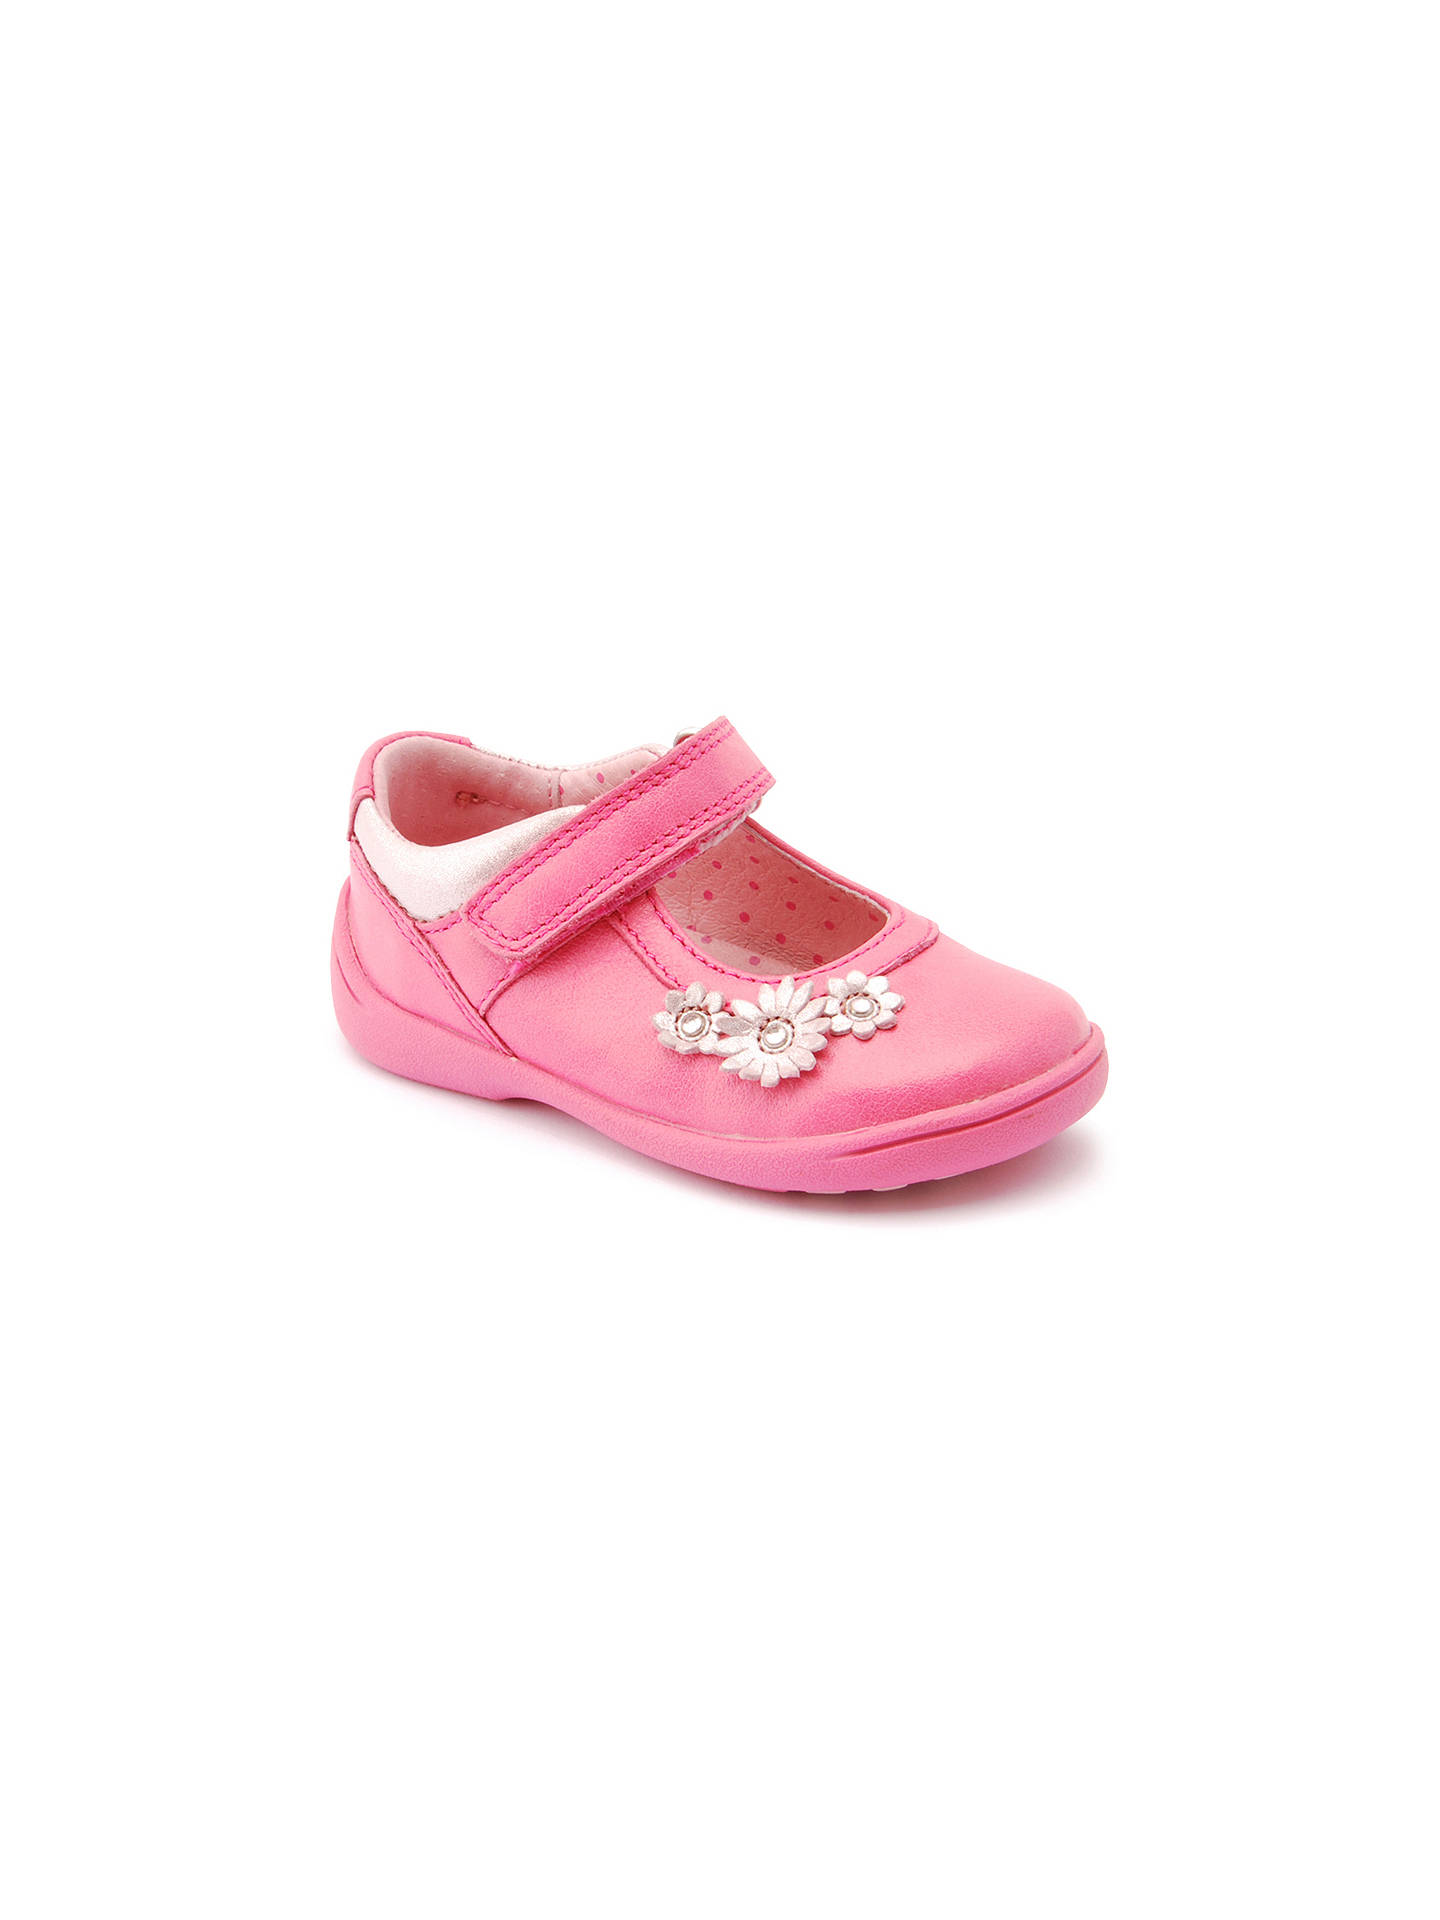 35202ab94b7c4 Buy Start-rite Super Soft Daisy Shoes, Hot Pink, 7F Jnr Online at ...